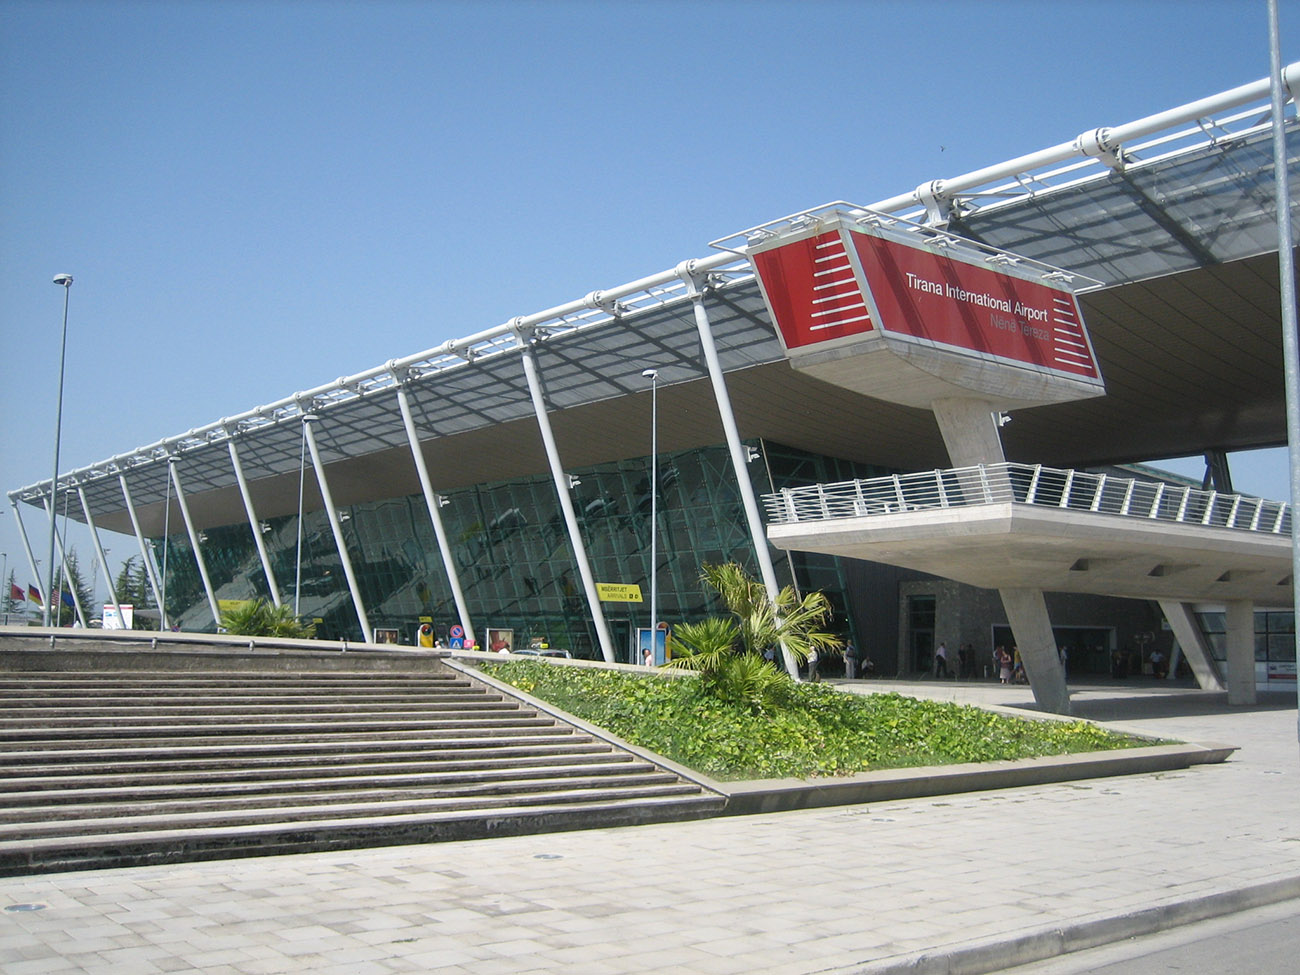 Aeroporto Tirana : City tours day trips activities things to do in skopje